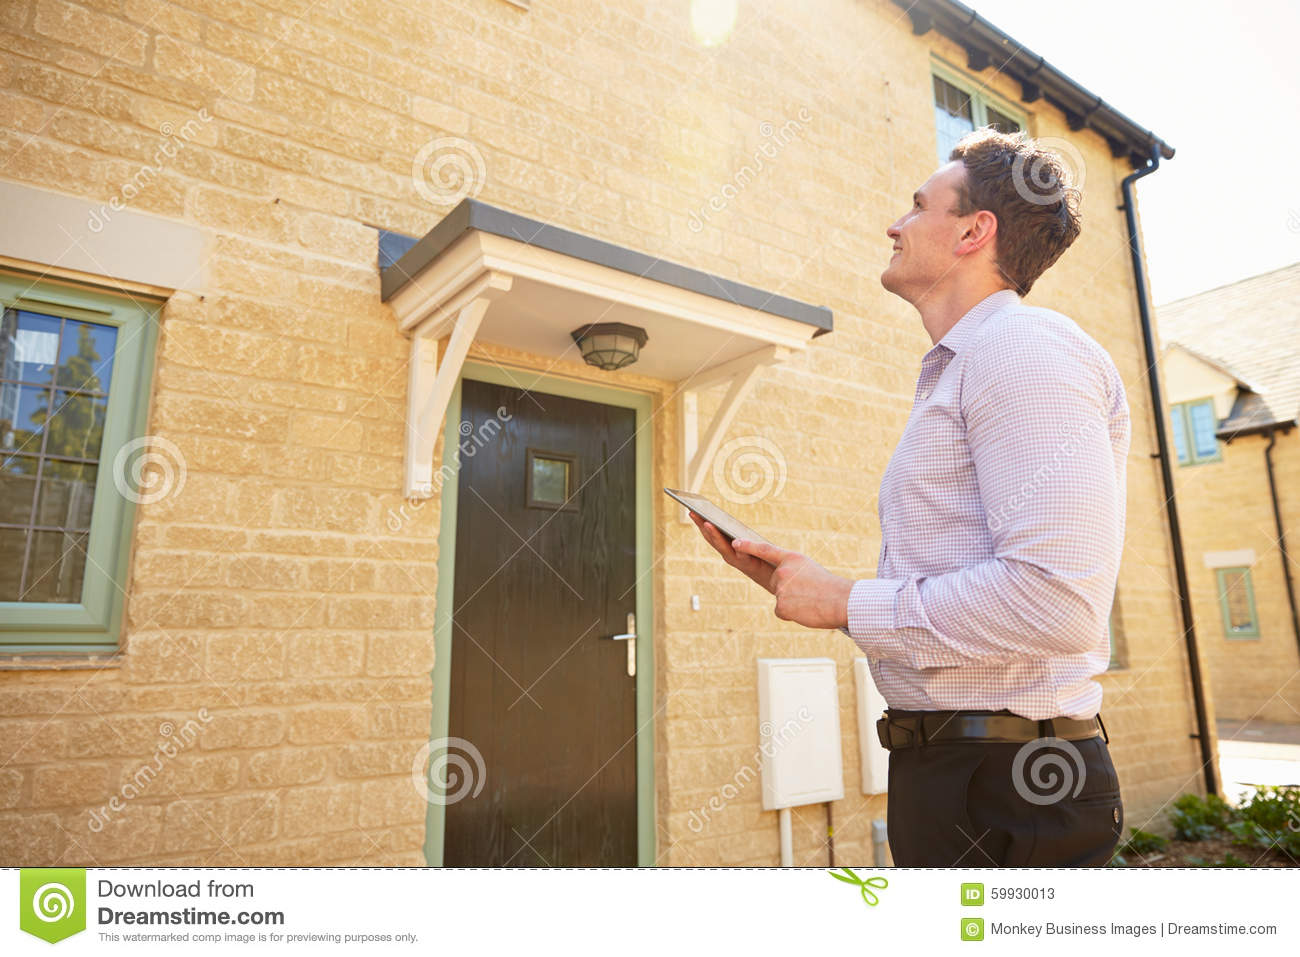 Real Estate Up Stock Image 67636783